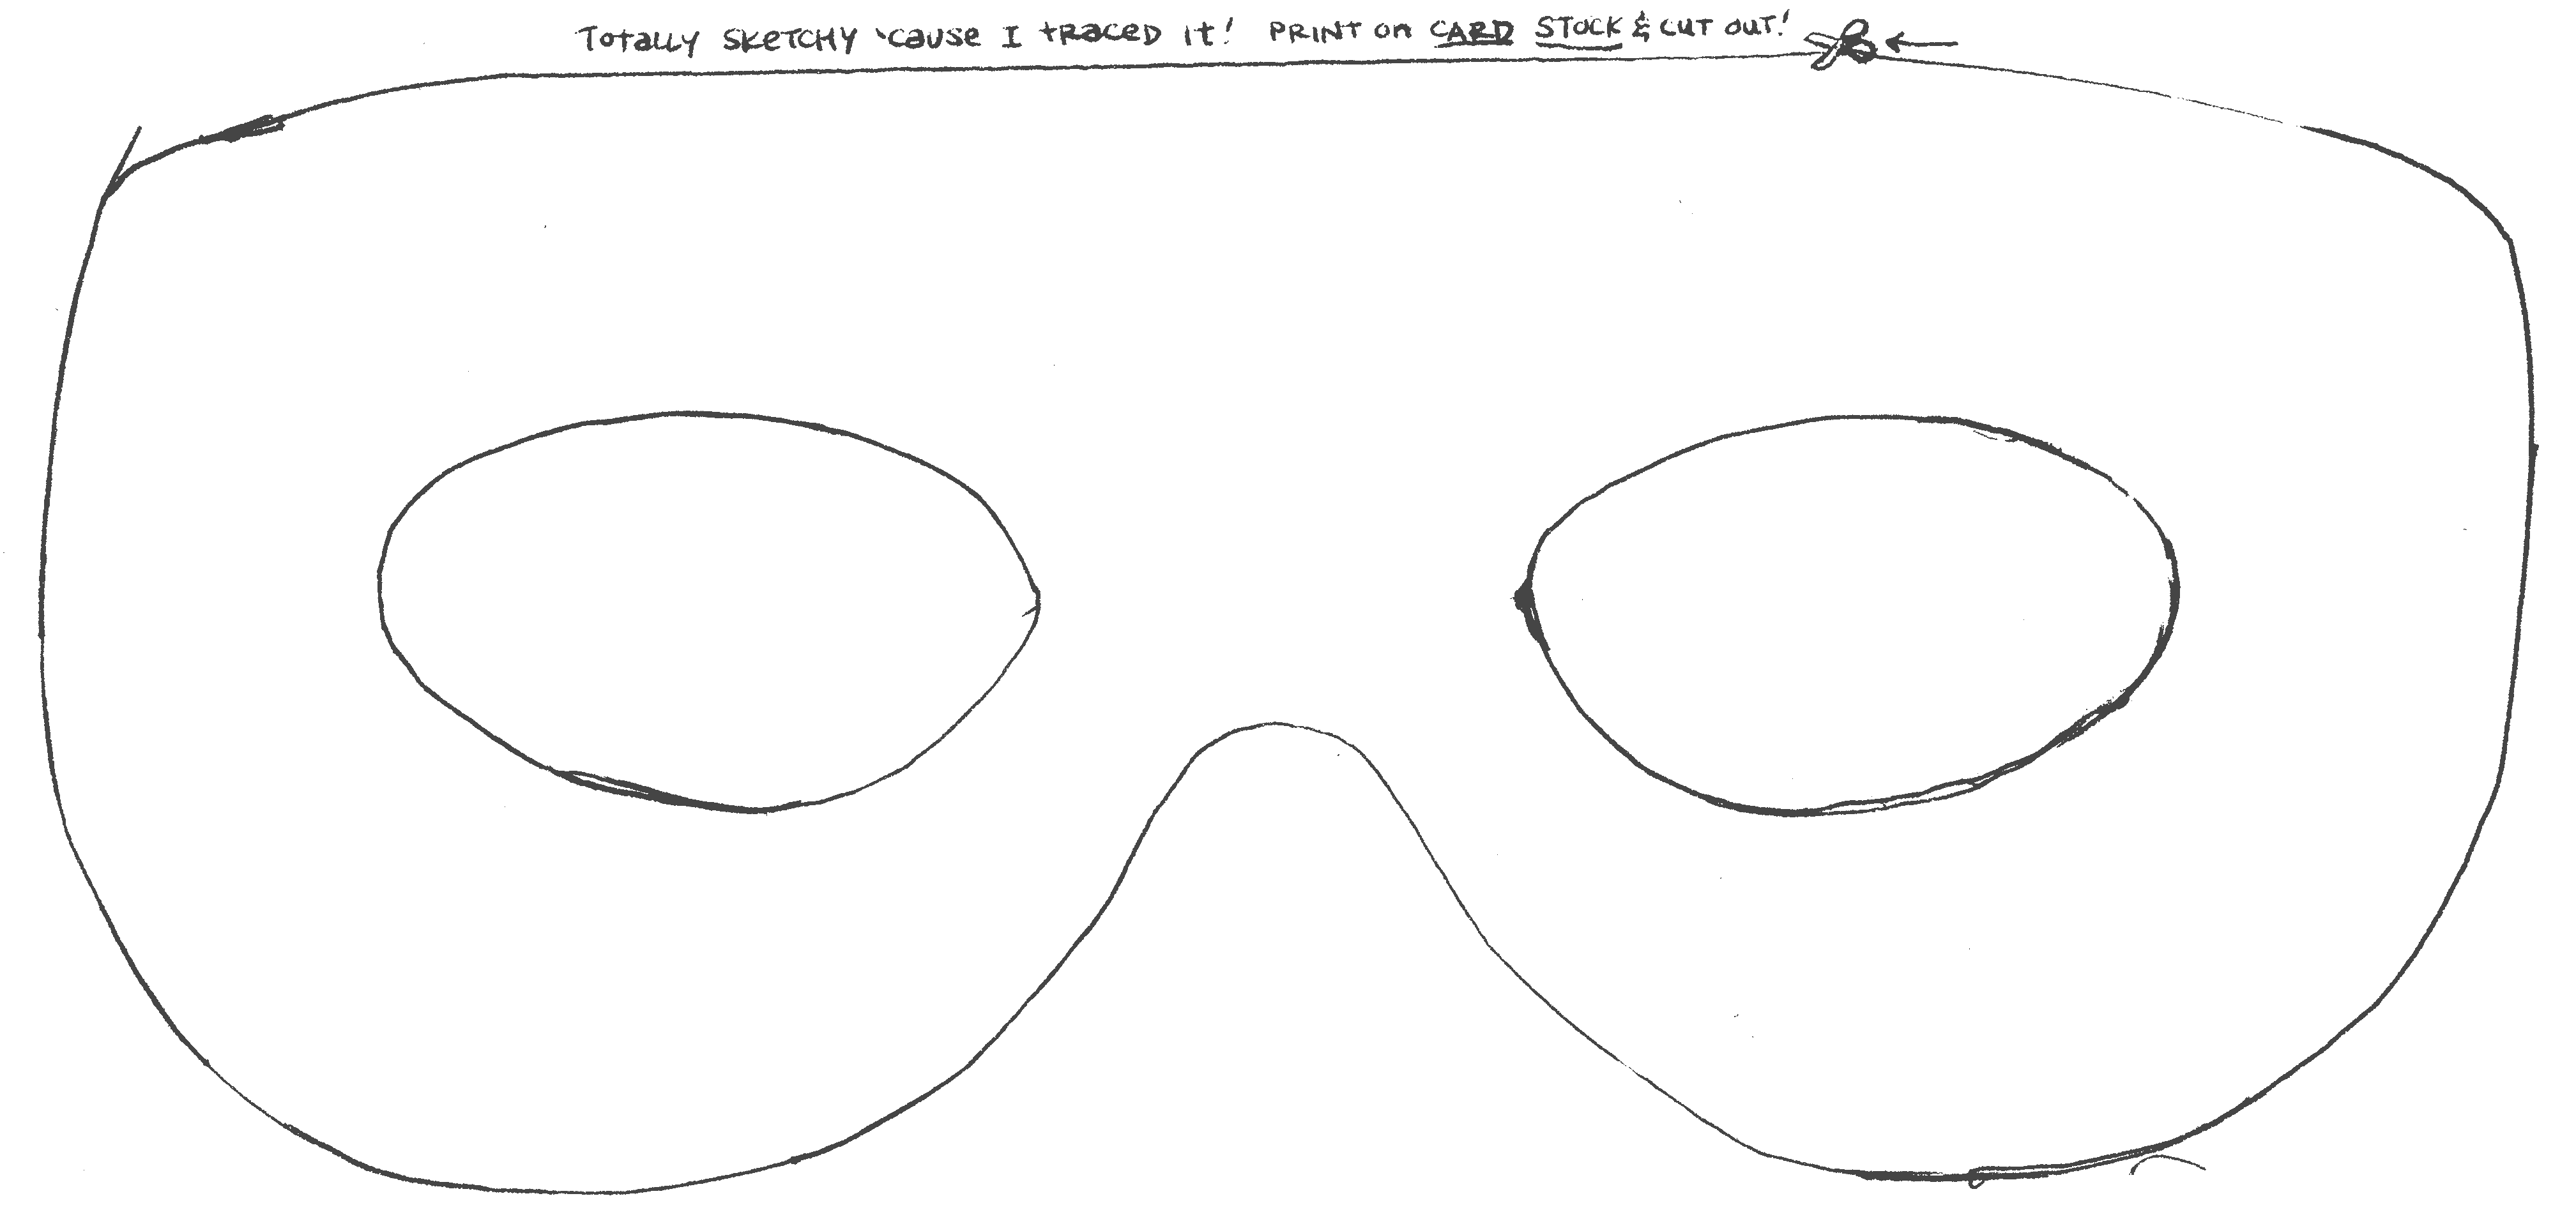 Ninja turtle mask template the image for Tortoise mask template